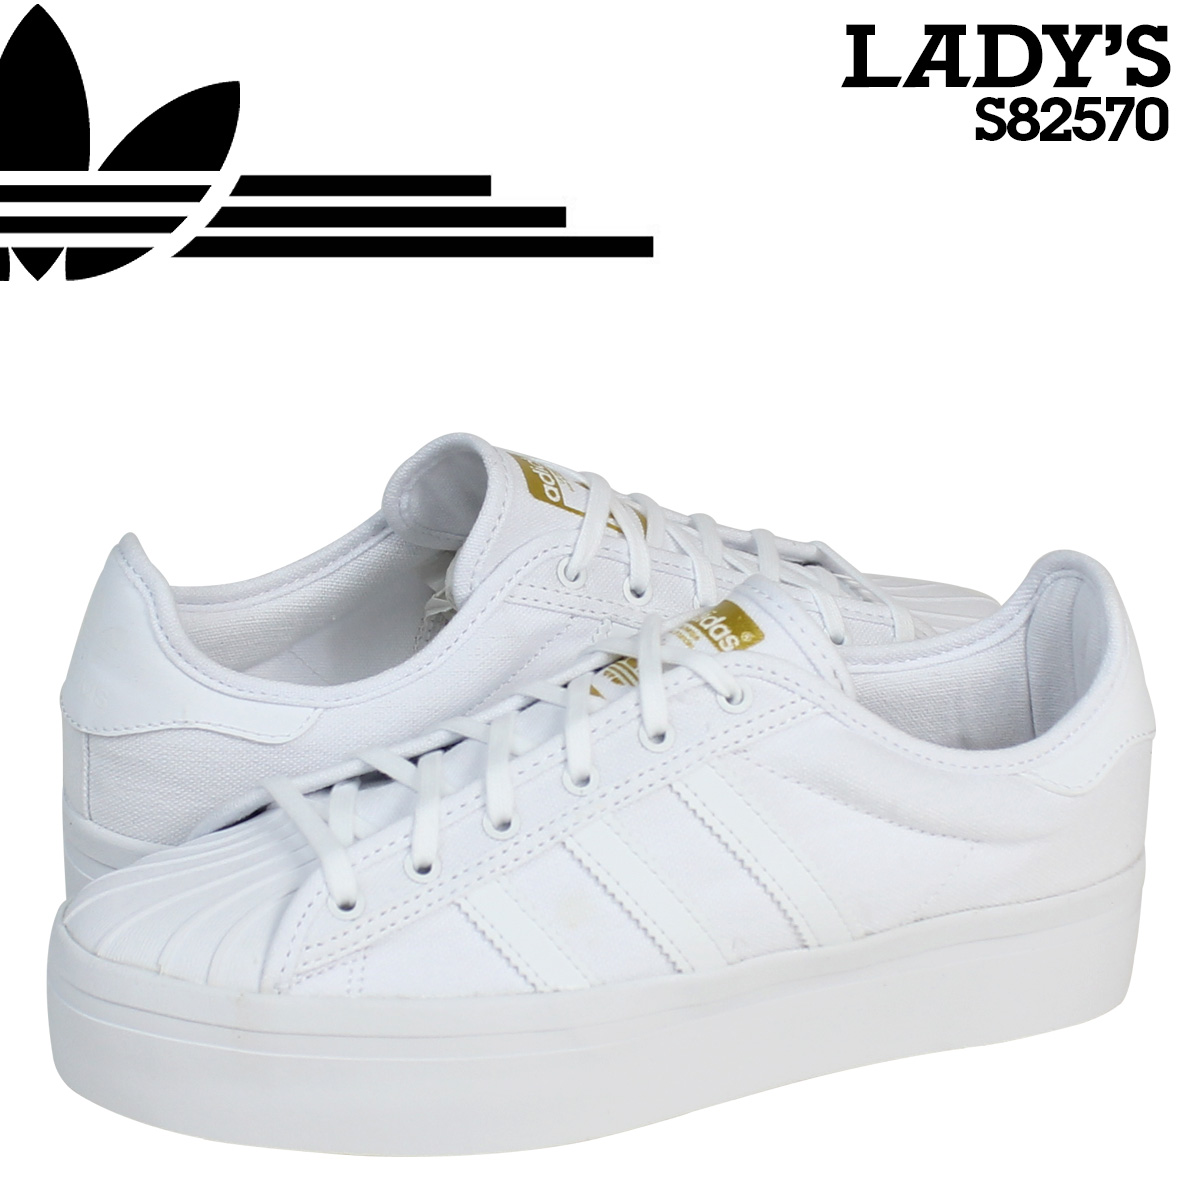 adidas superstar white women adidas white high tops blue and